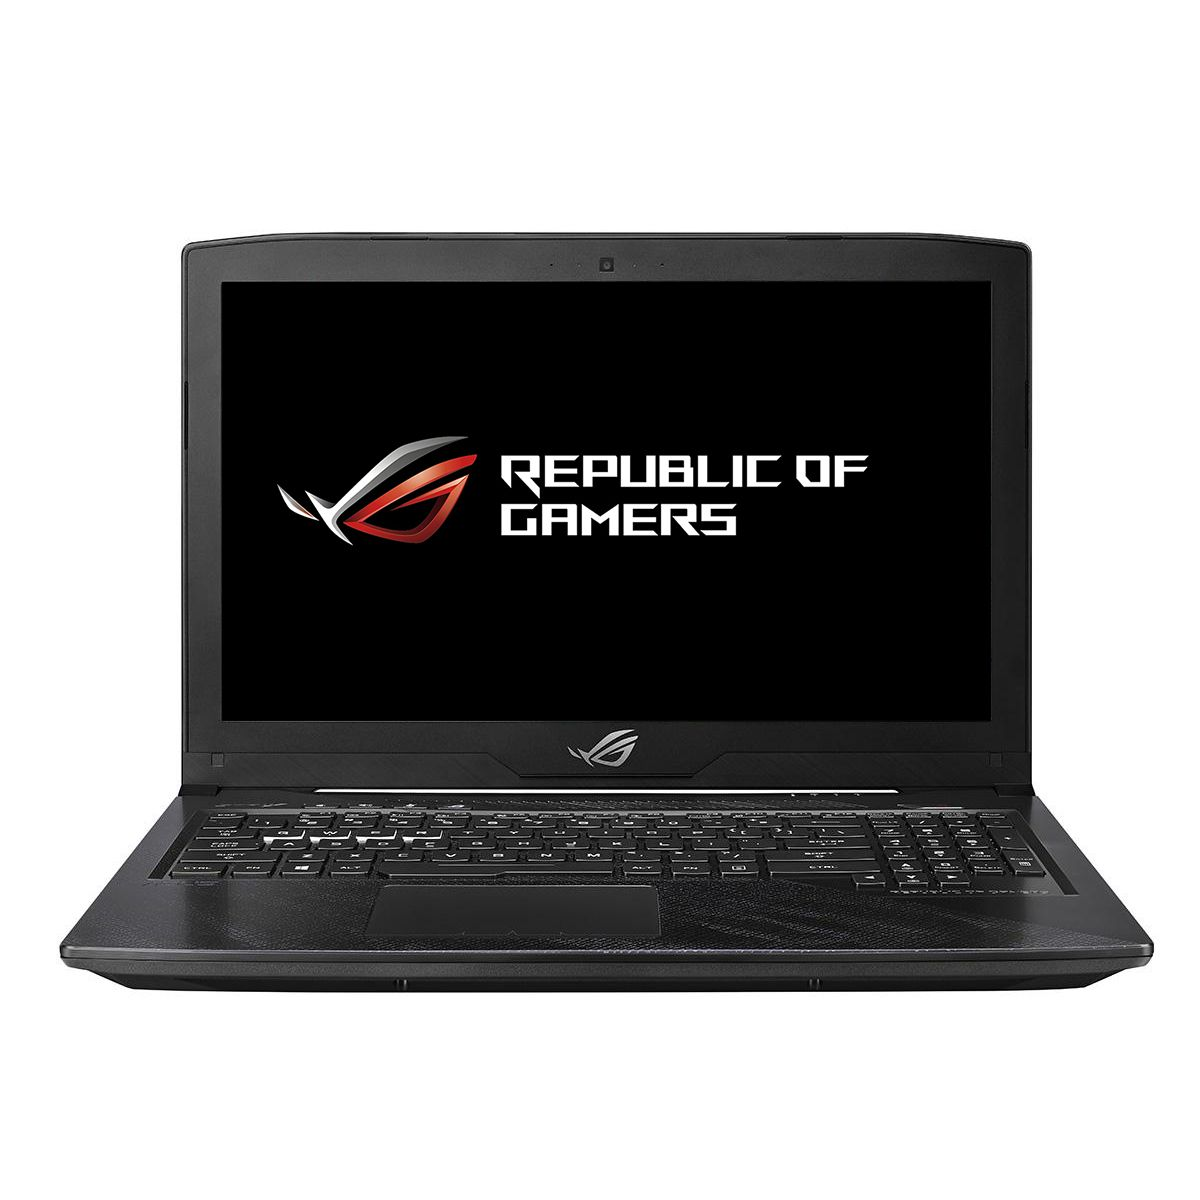 Notebook Asus ROG GL503GE 15.6 Full HD Intel Core i7-8750H GTX 1050 Ti-4GB RAM 8GB HDD 1TB + SSD 256GB No OS Negru